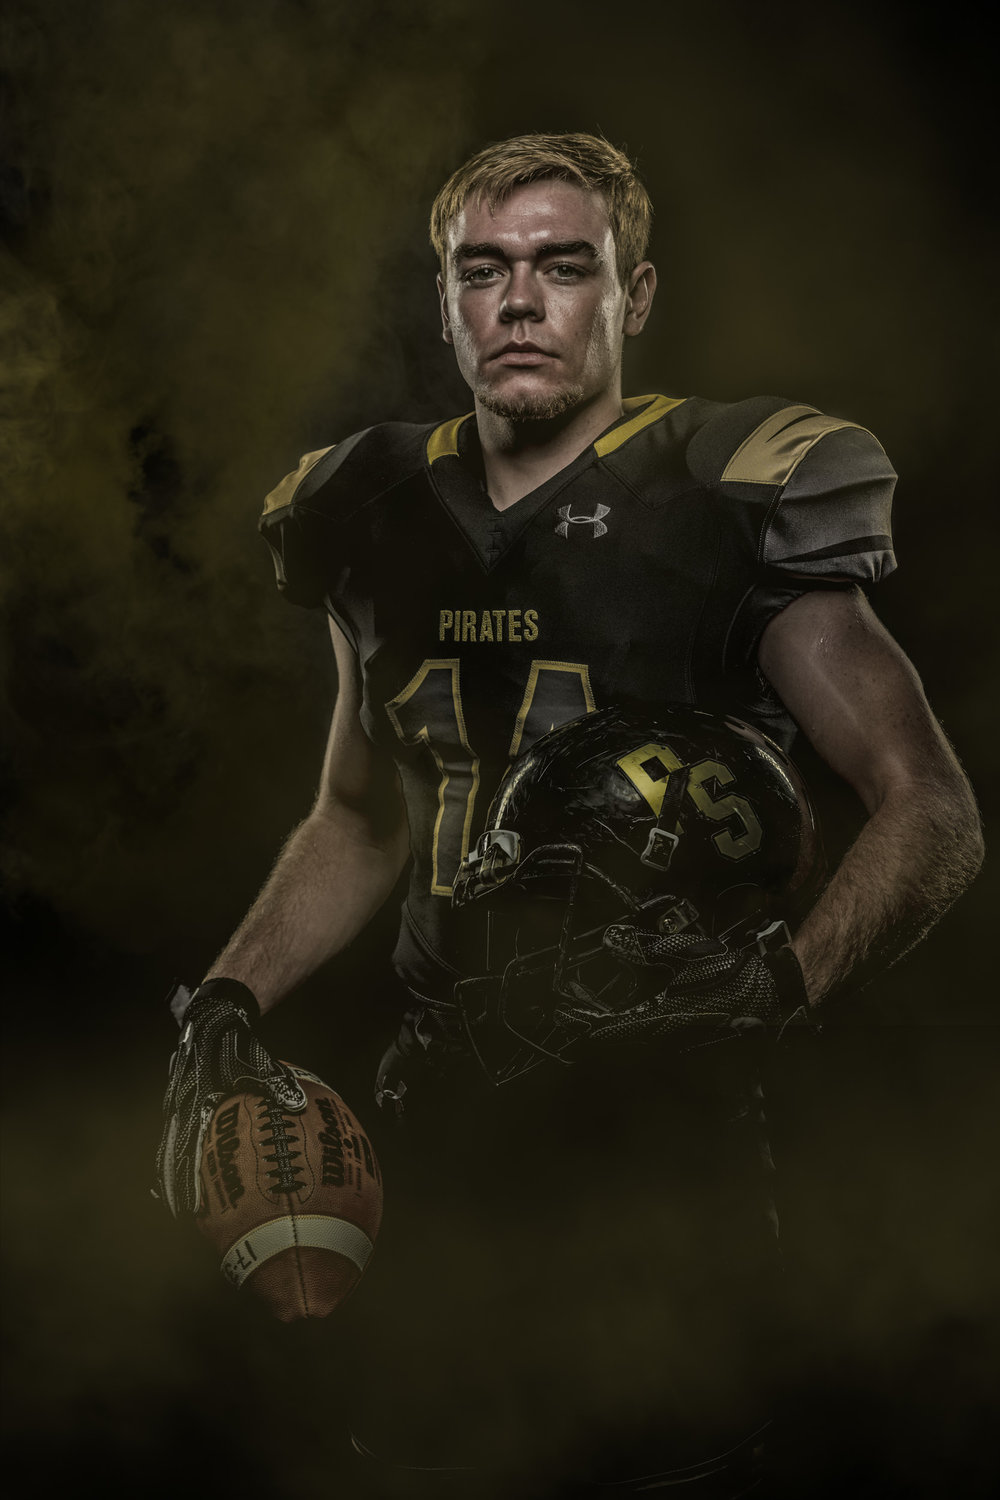 Portrait of High School Football Player